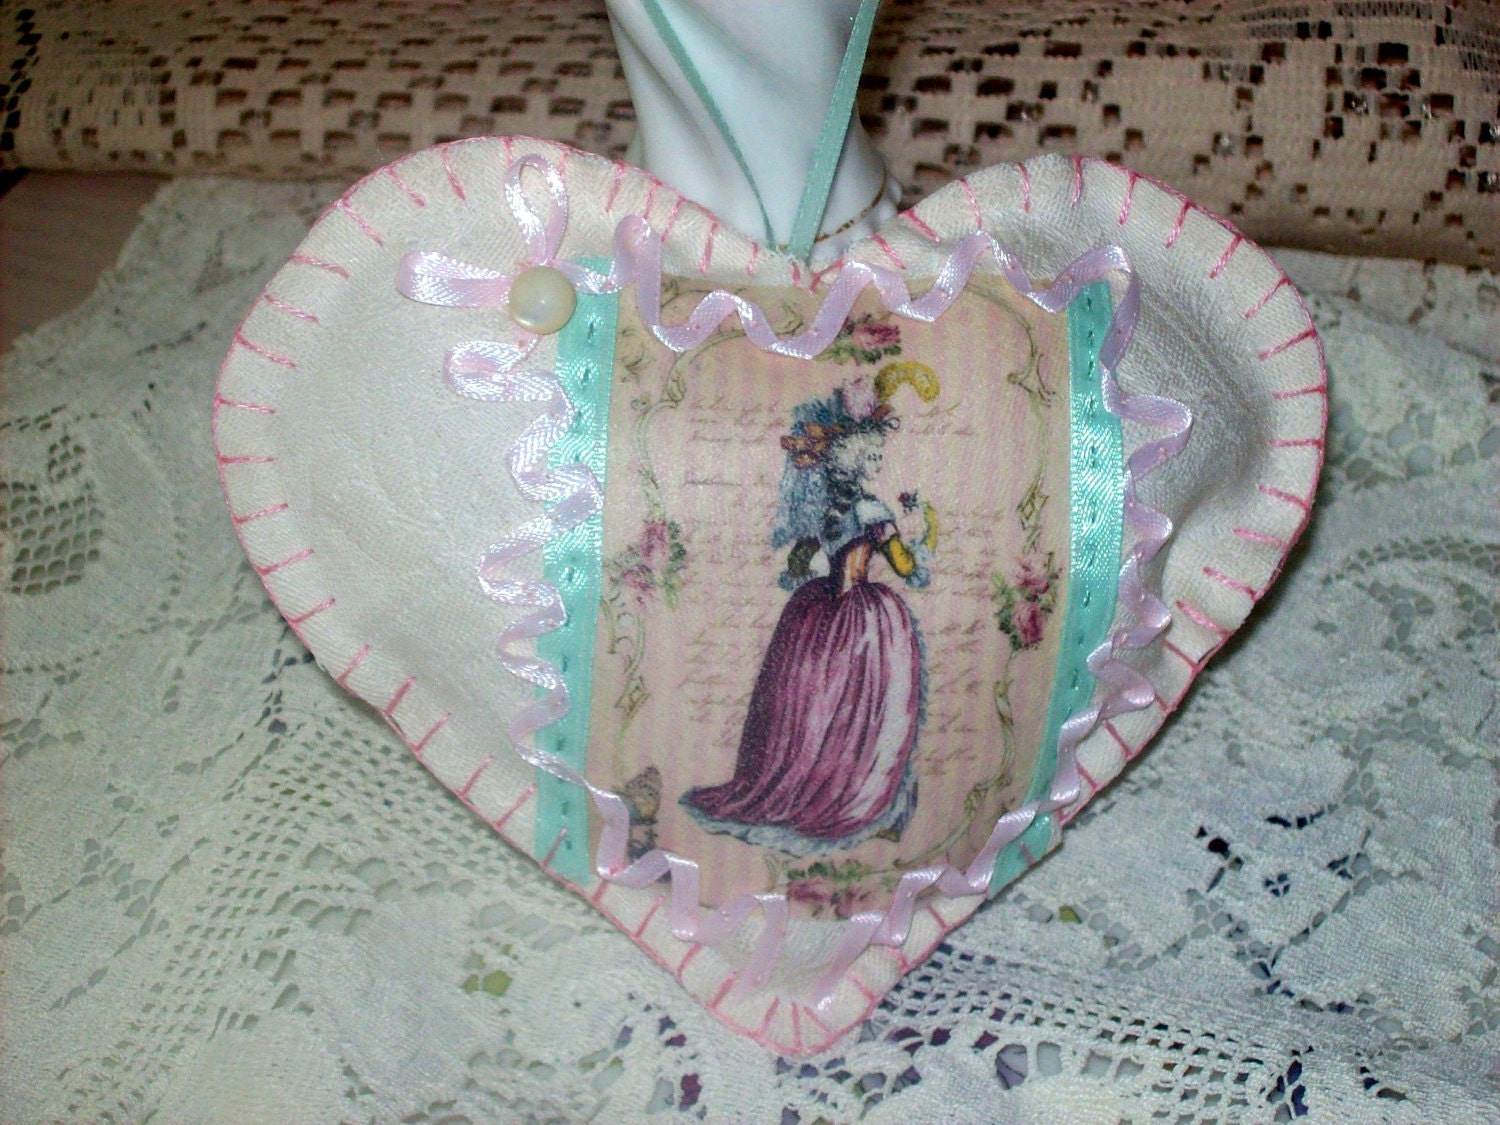 Paris French Inspired Marie Antoinette Heart Sachet Pastel Pink Green Aquolina Fragrance